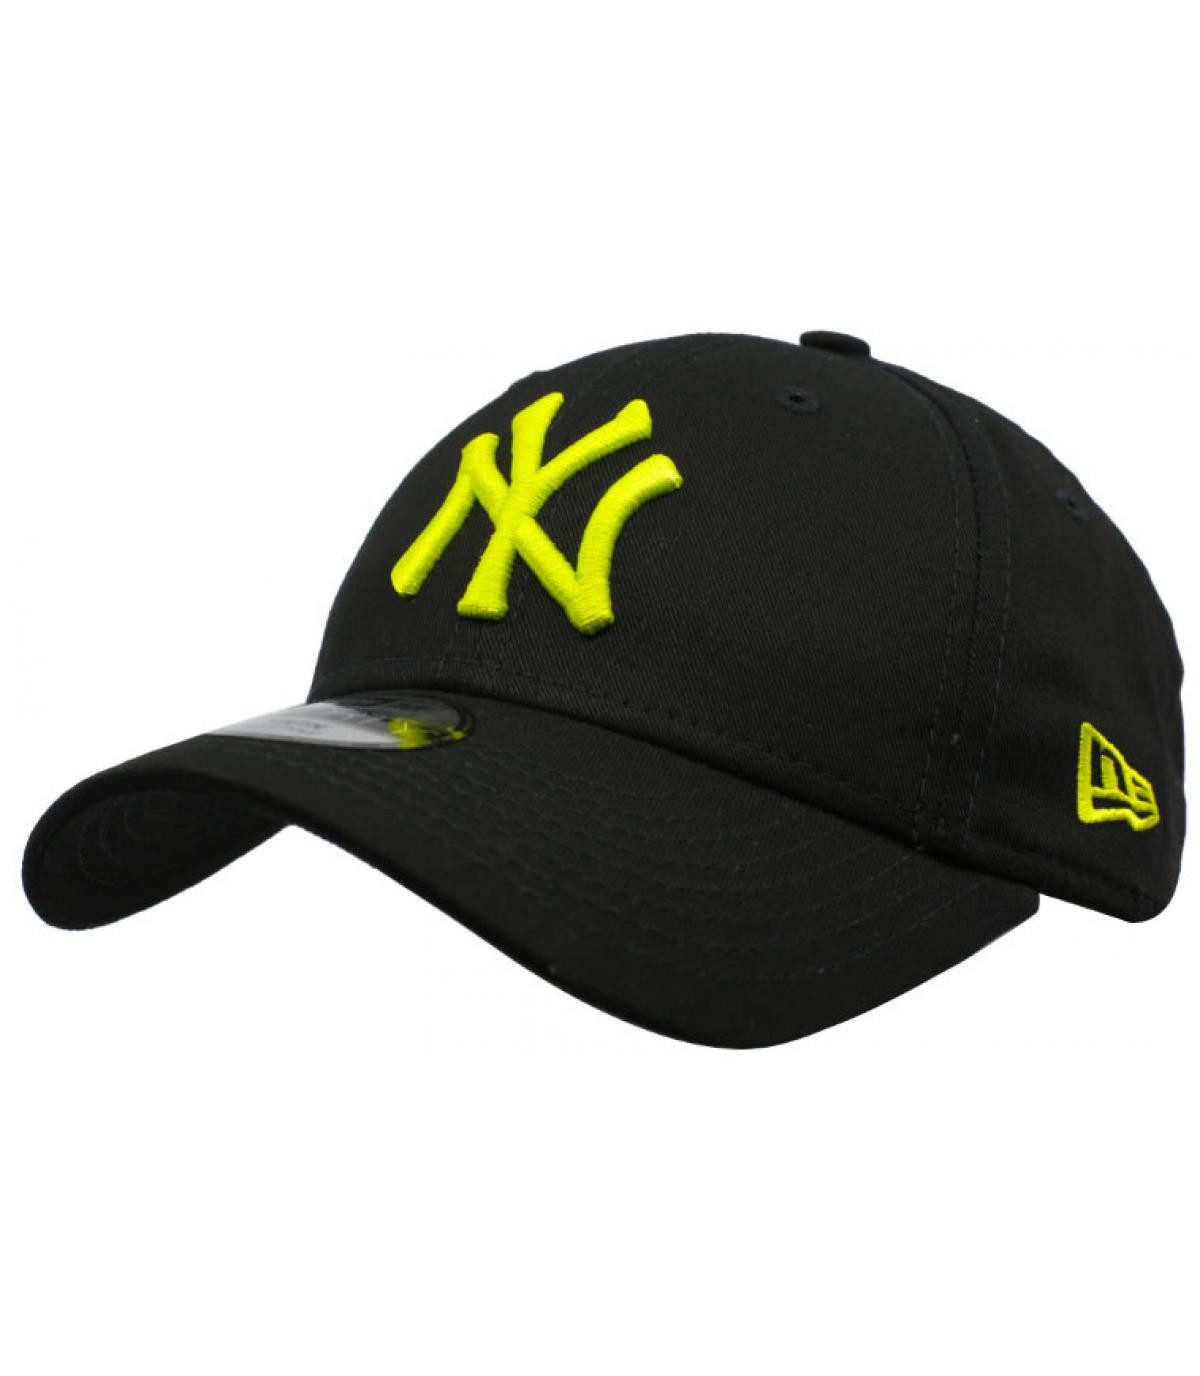 Details Kids League Ess NY 9Forty black cyber green - afbeeling 2